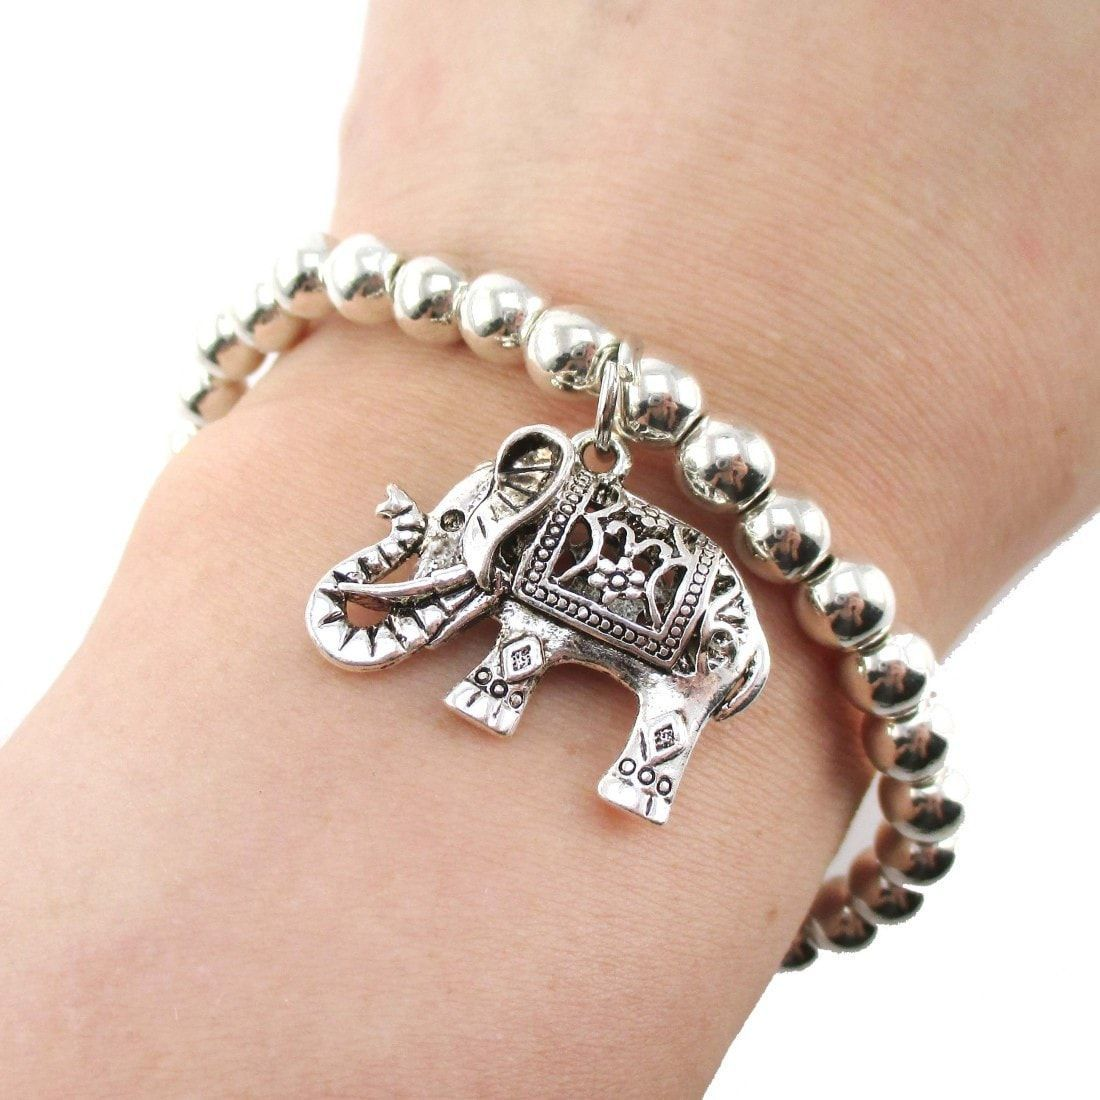 Minimal silver beaded stretchy bracelet with elephant charm